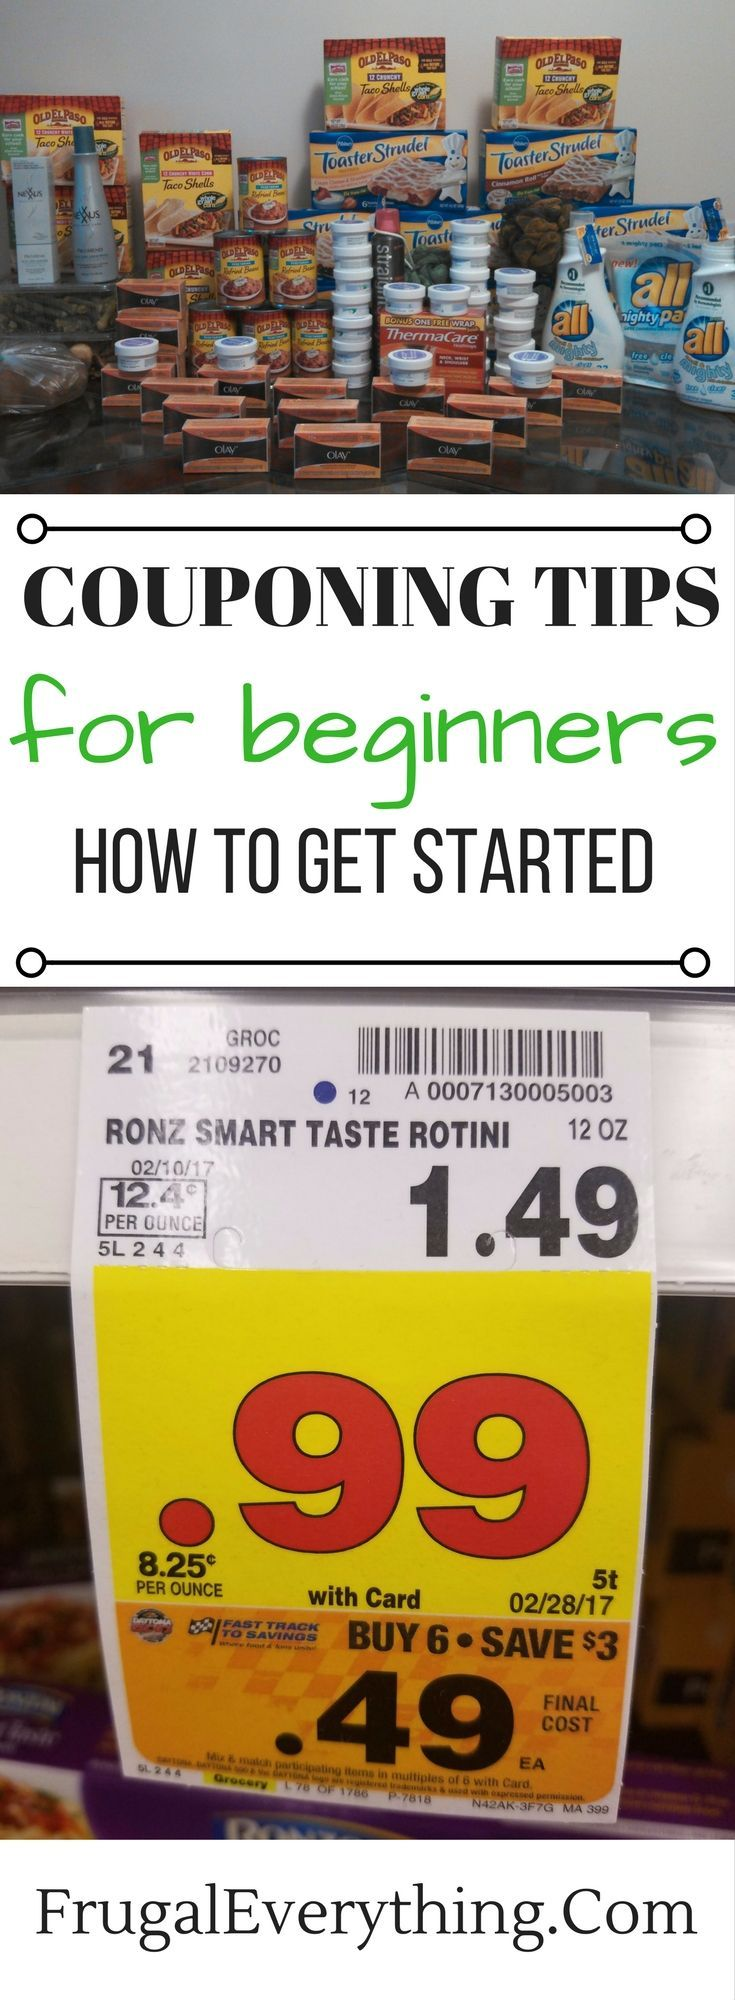 Couponing is a great way to save money!  Check out these couponing tips for beginners to get started today!